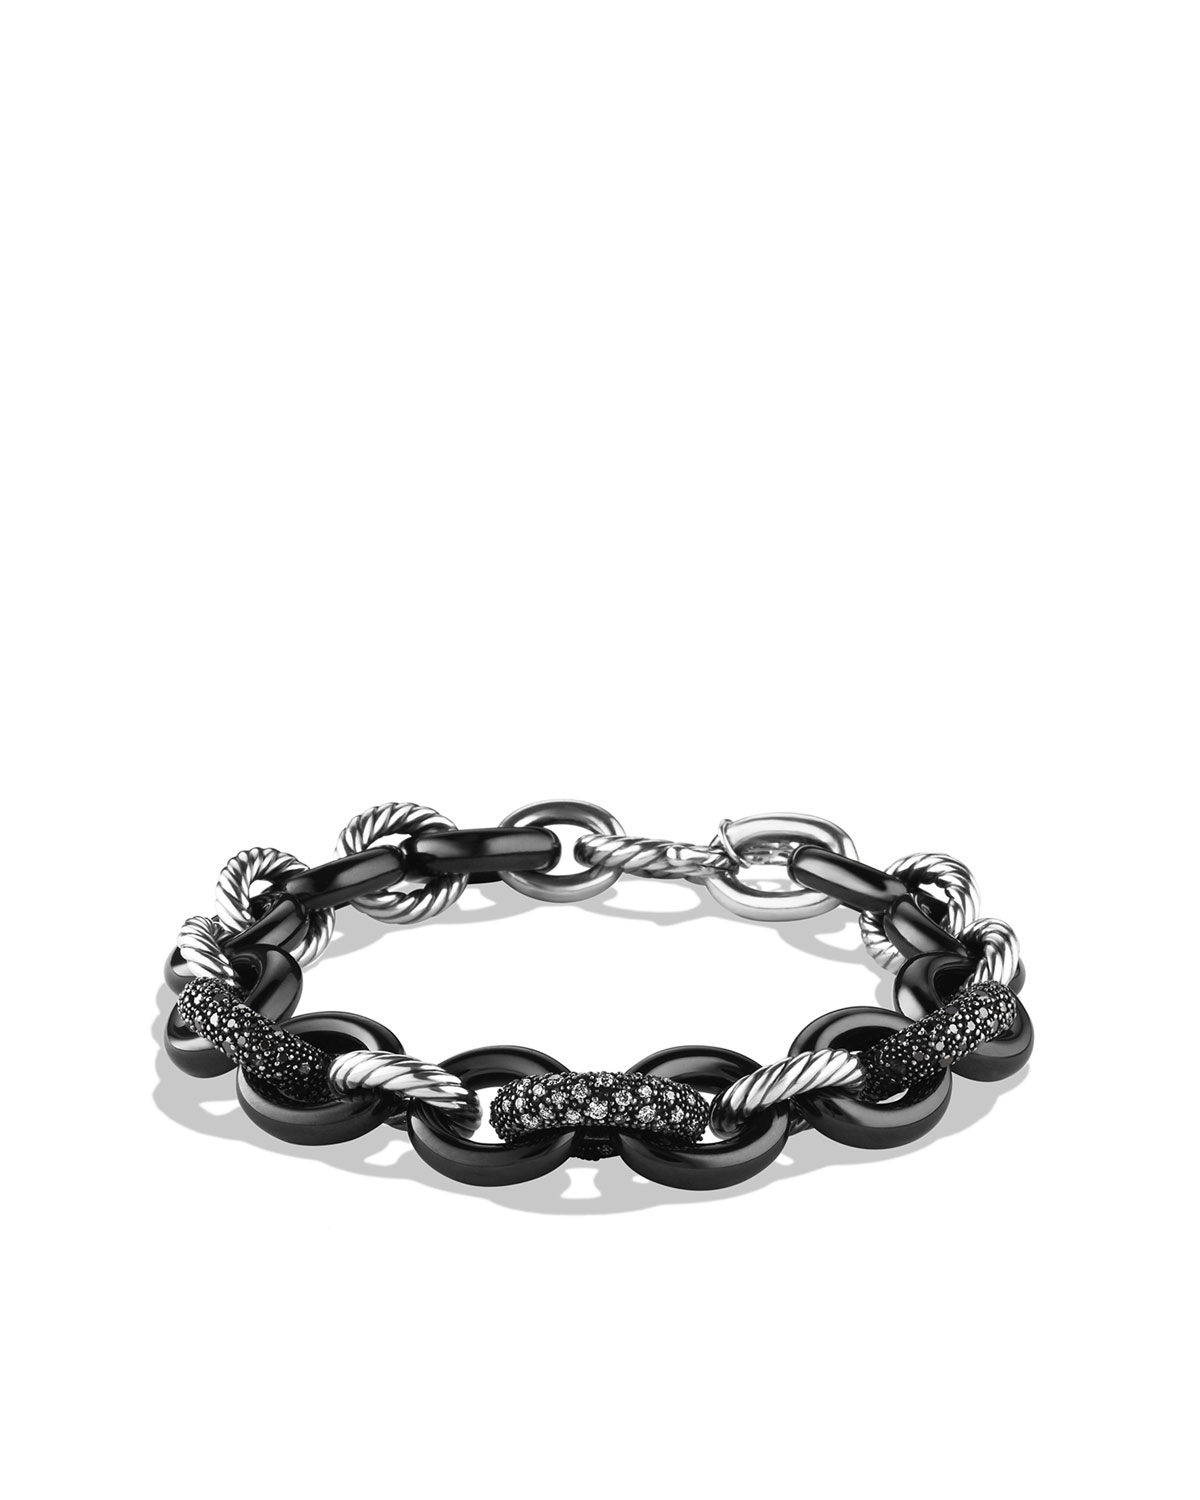 Midnight M�lange Oval Small Link Bracelet with Black and White Diamonds